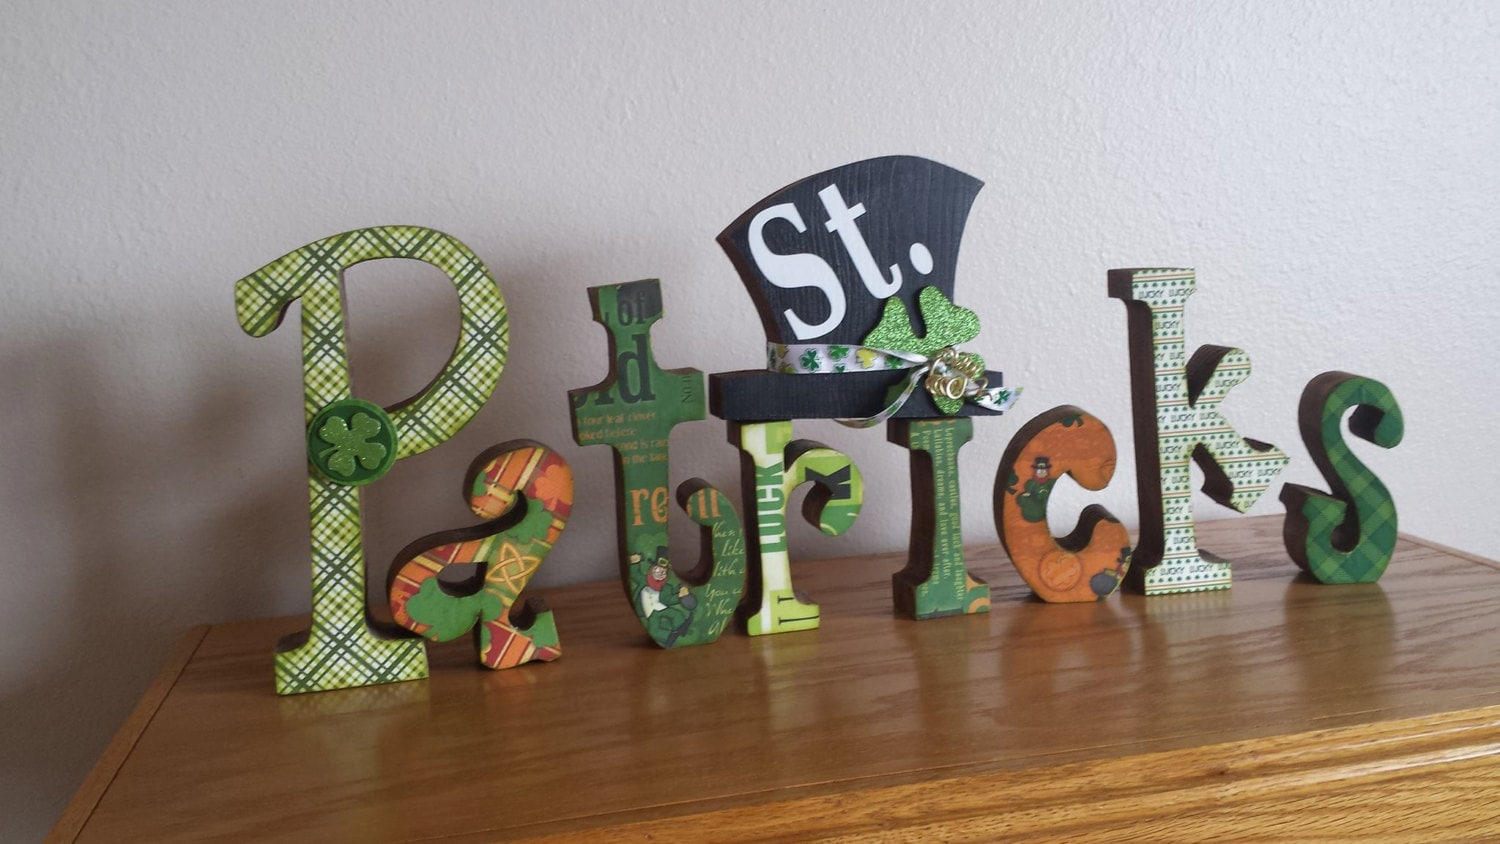 St patricks day wood letters home decor by thecraftyattic for Home decor 86th street